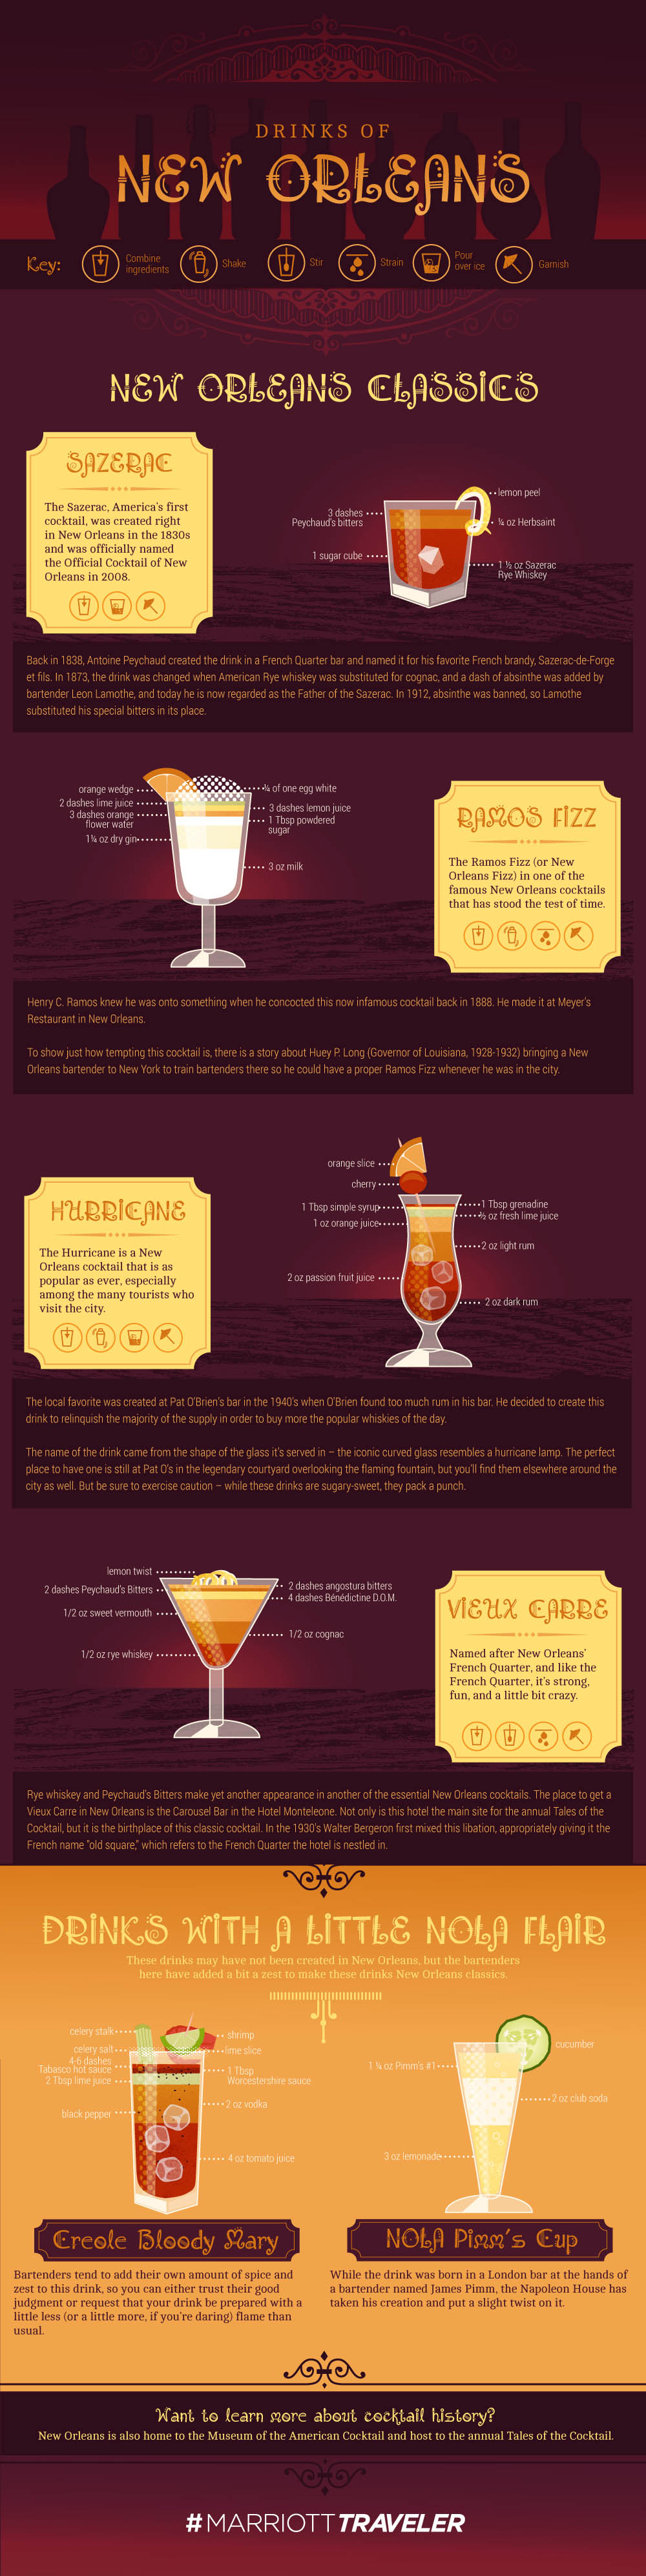 new-orleans-iconic-cocktails-infographic-final.jpg